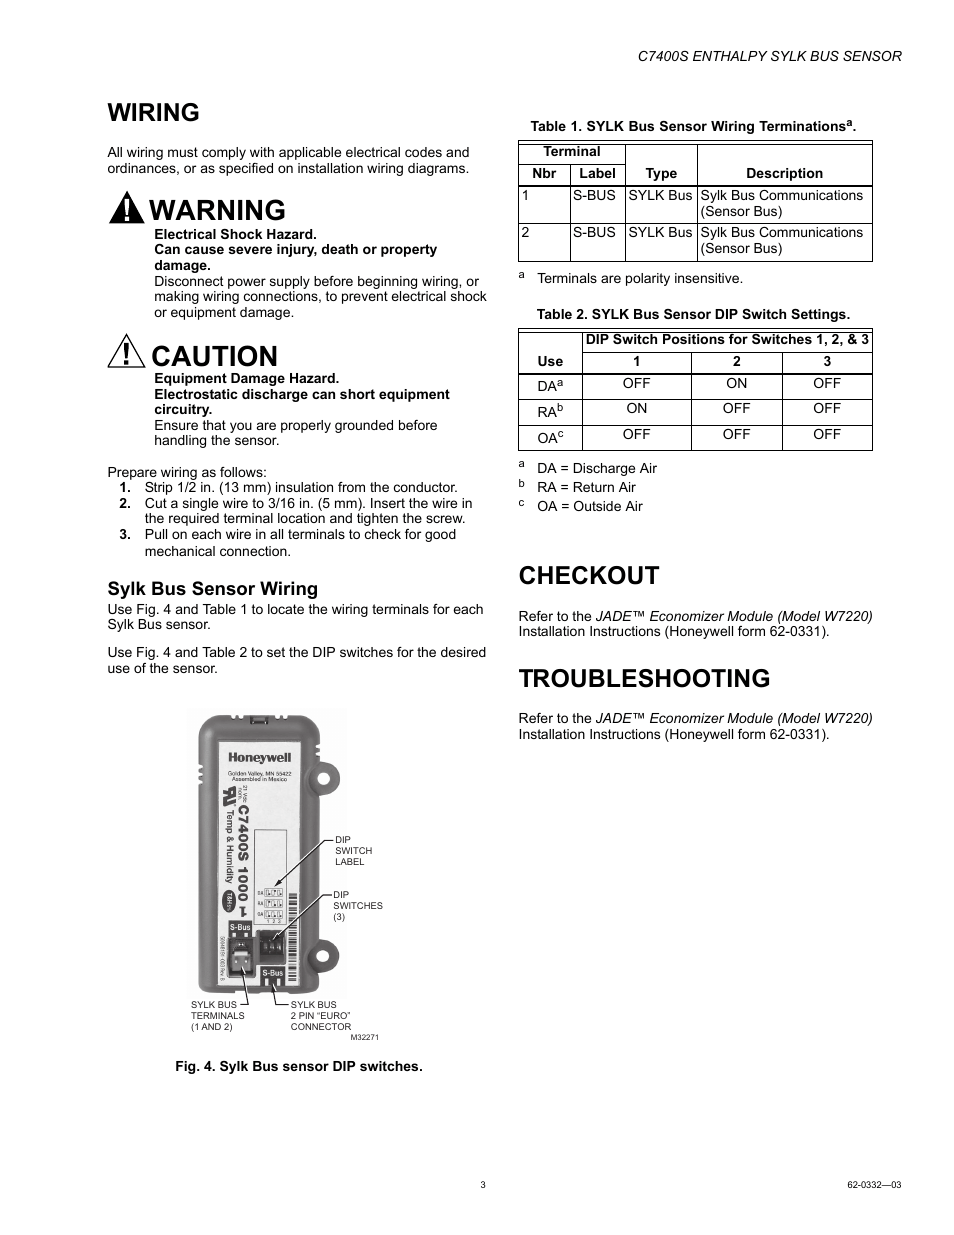 hight resolution of wiring checkout troubleshooting honeywell enthalpy sylk bus sensor c7400s user manual page 3 4